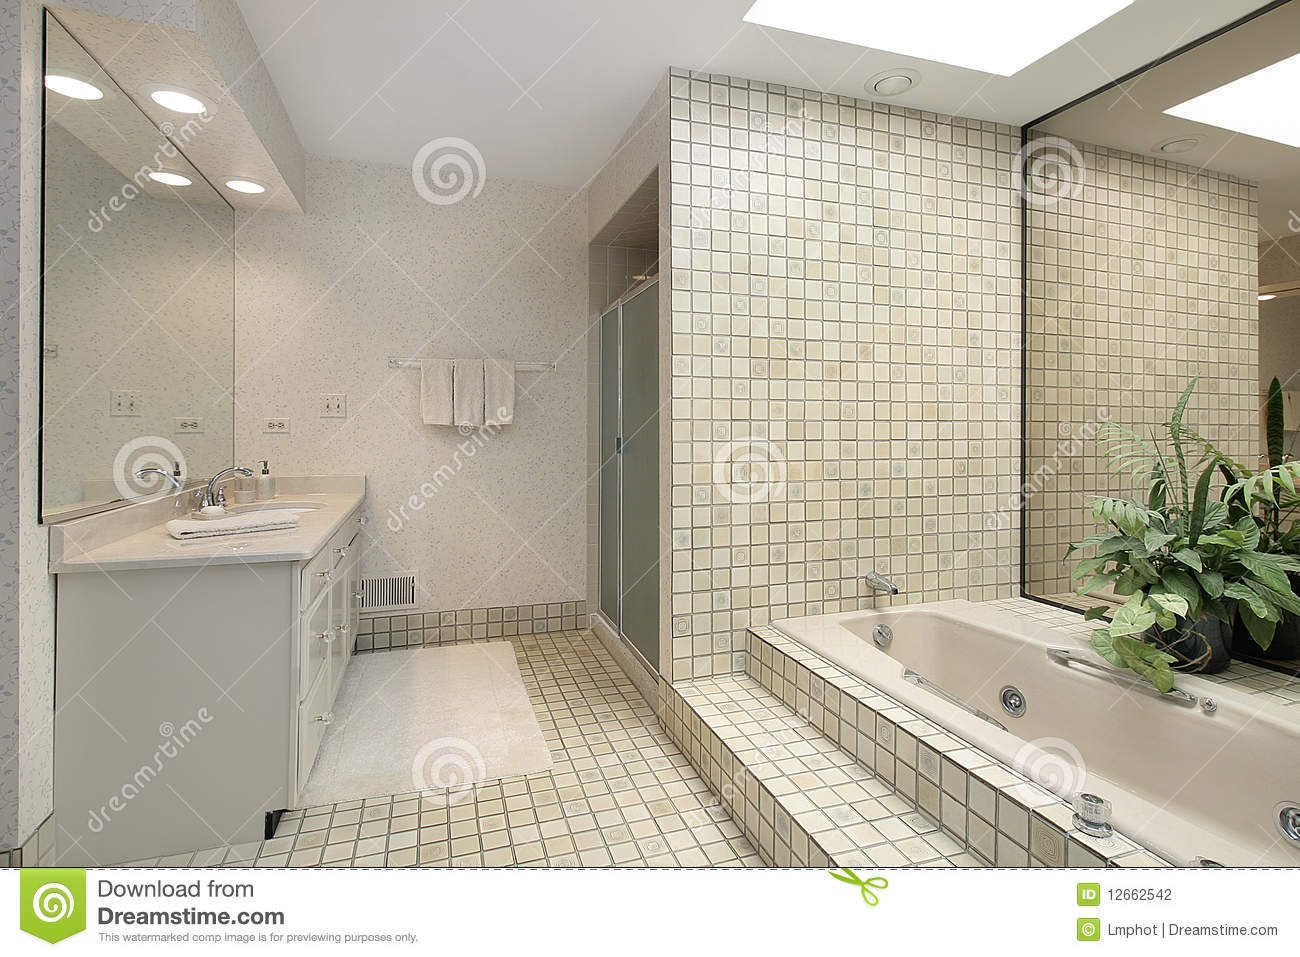 Tinas De Baño De Azulejo:MasterBath Tub with Step